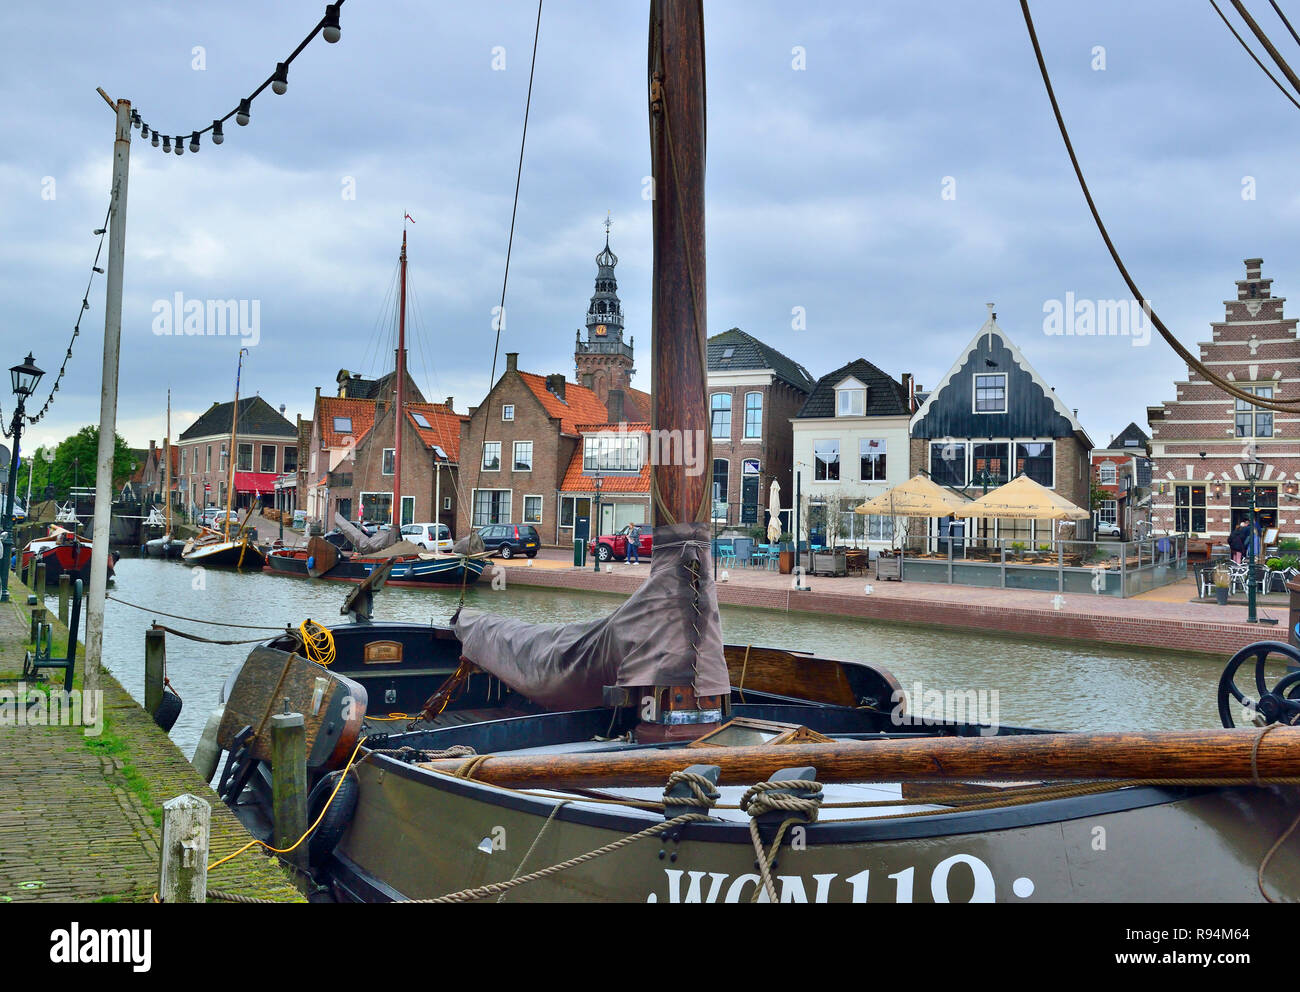 View of the centre of the historical town of Monnickendam on the coast of the Markermeer, and in the Waterland Region, North Holland, Netherlands - Stock Image